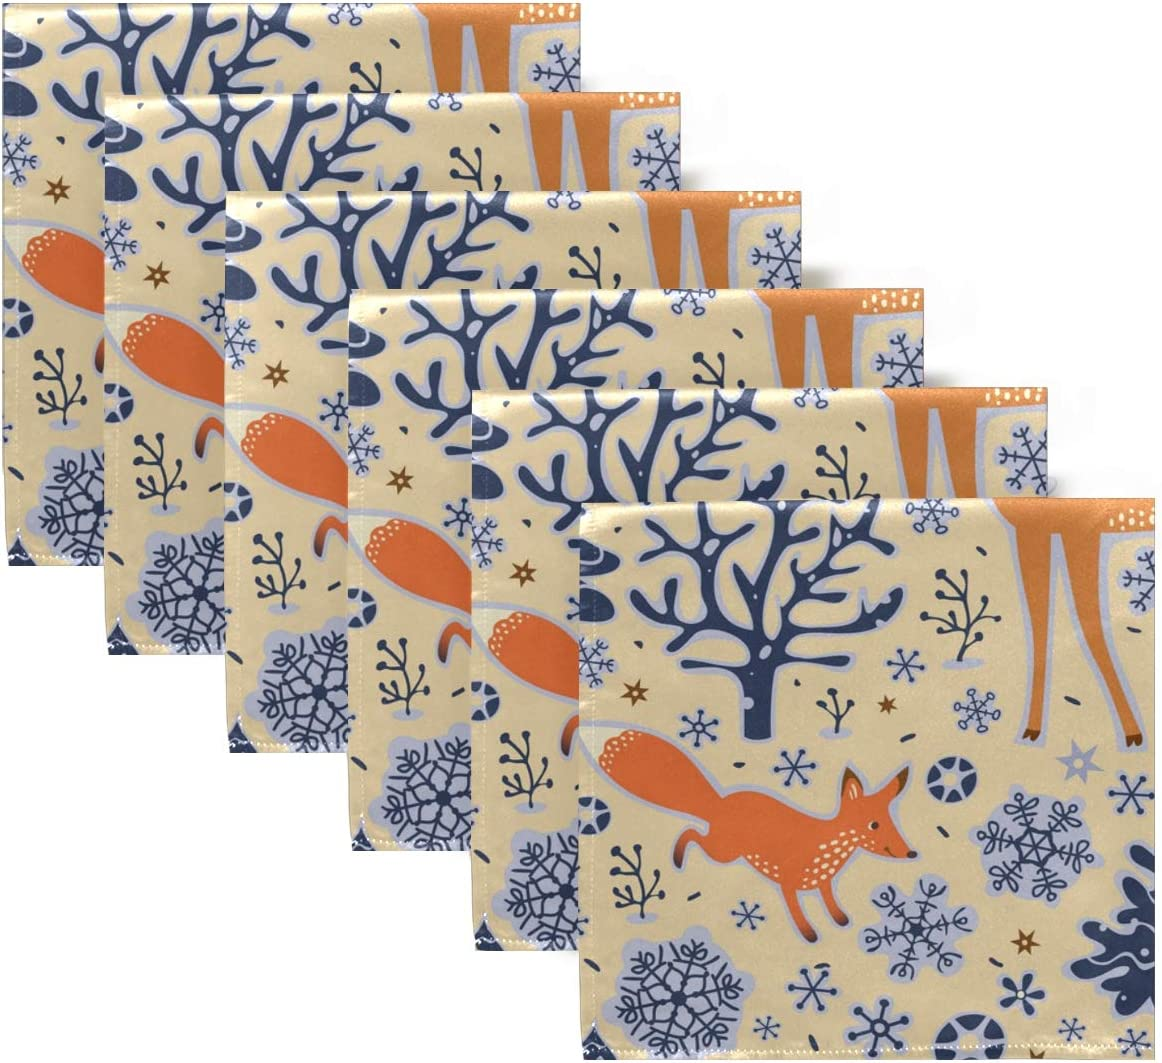 AUUXVA BIGJOKE Cloth Napkins African Wildlife Deer Fox Print Set of 1 Washable and Reusable Dinner Napkins Soft Table Napkins for Restaurant Party Kitchen Family Dinner 20 x 20 in